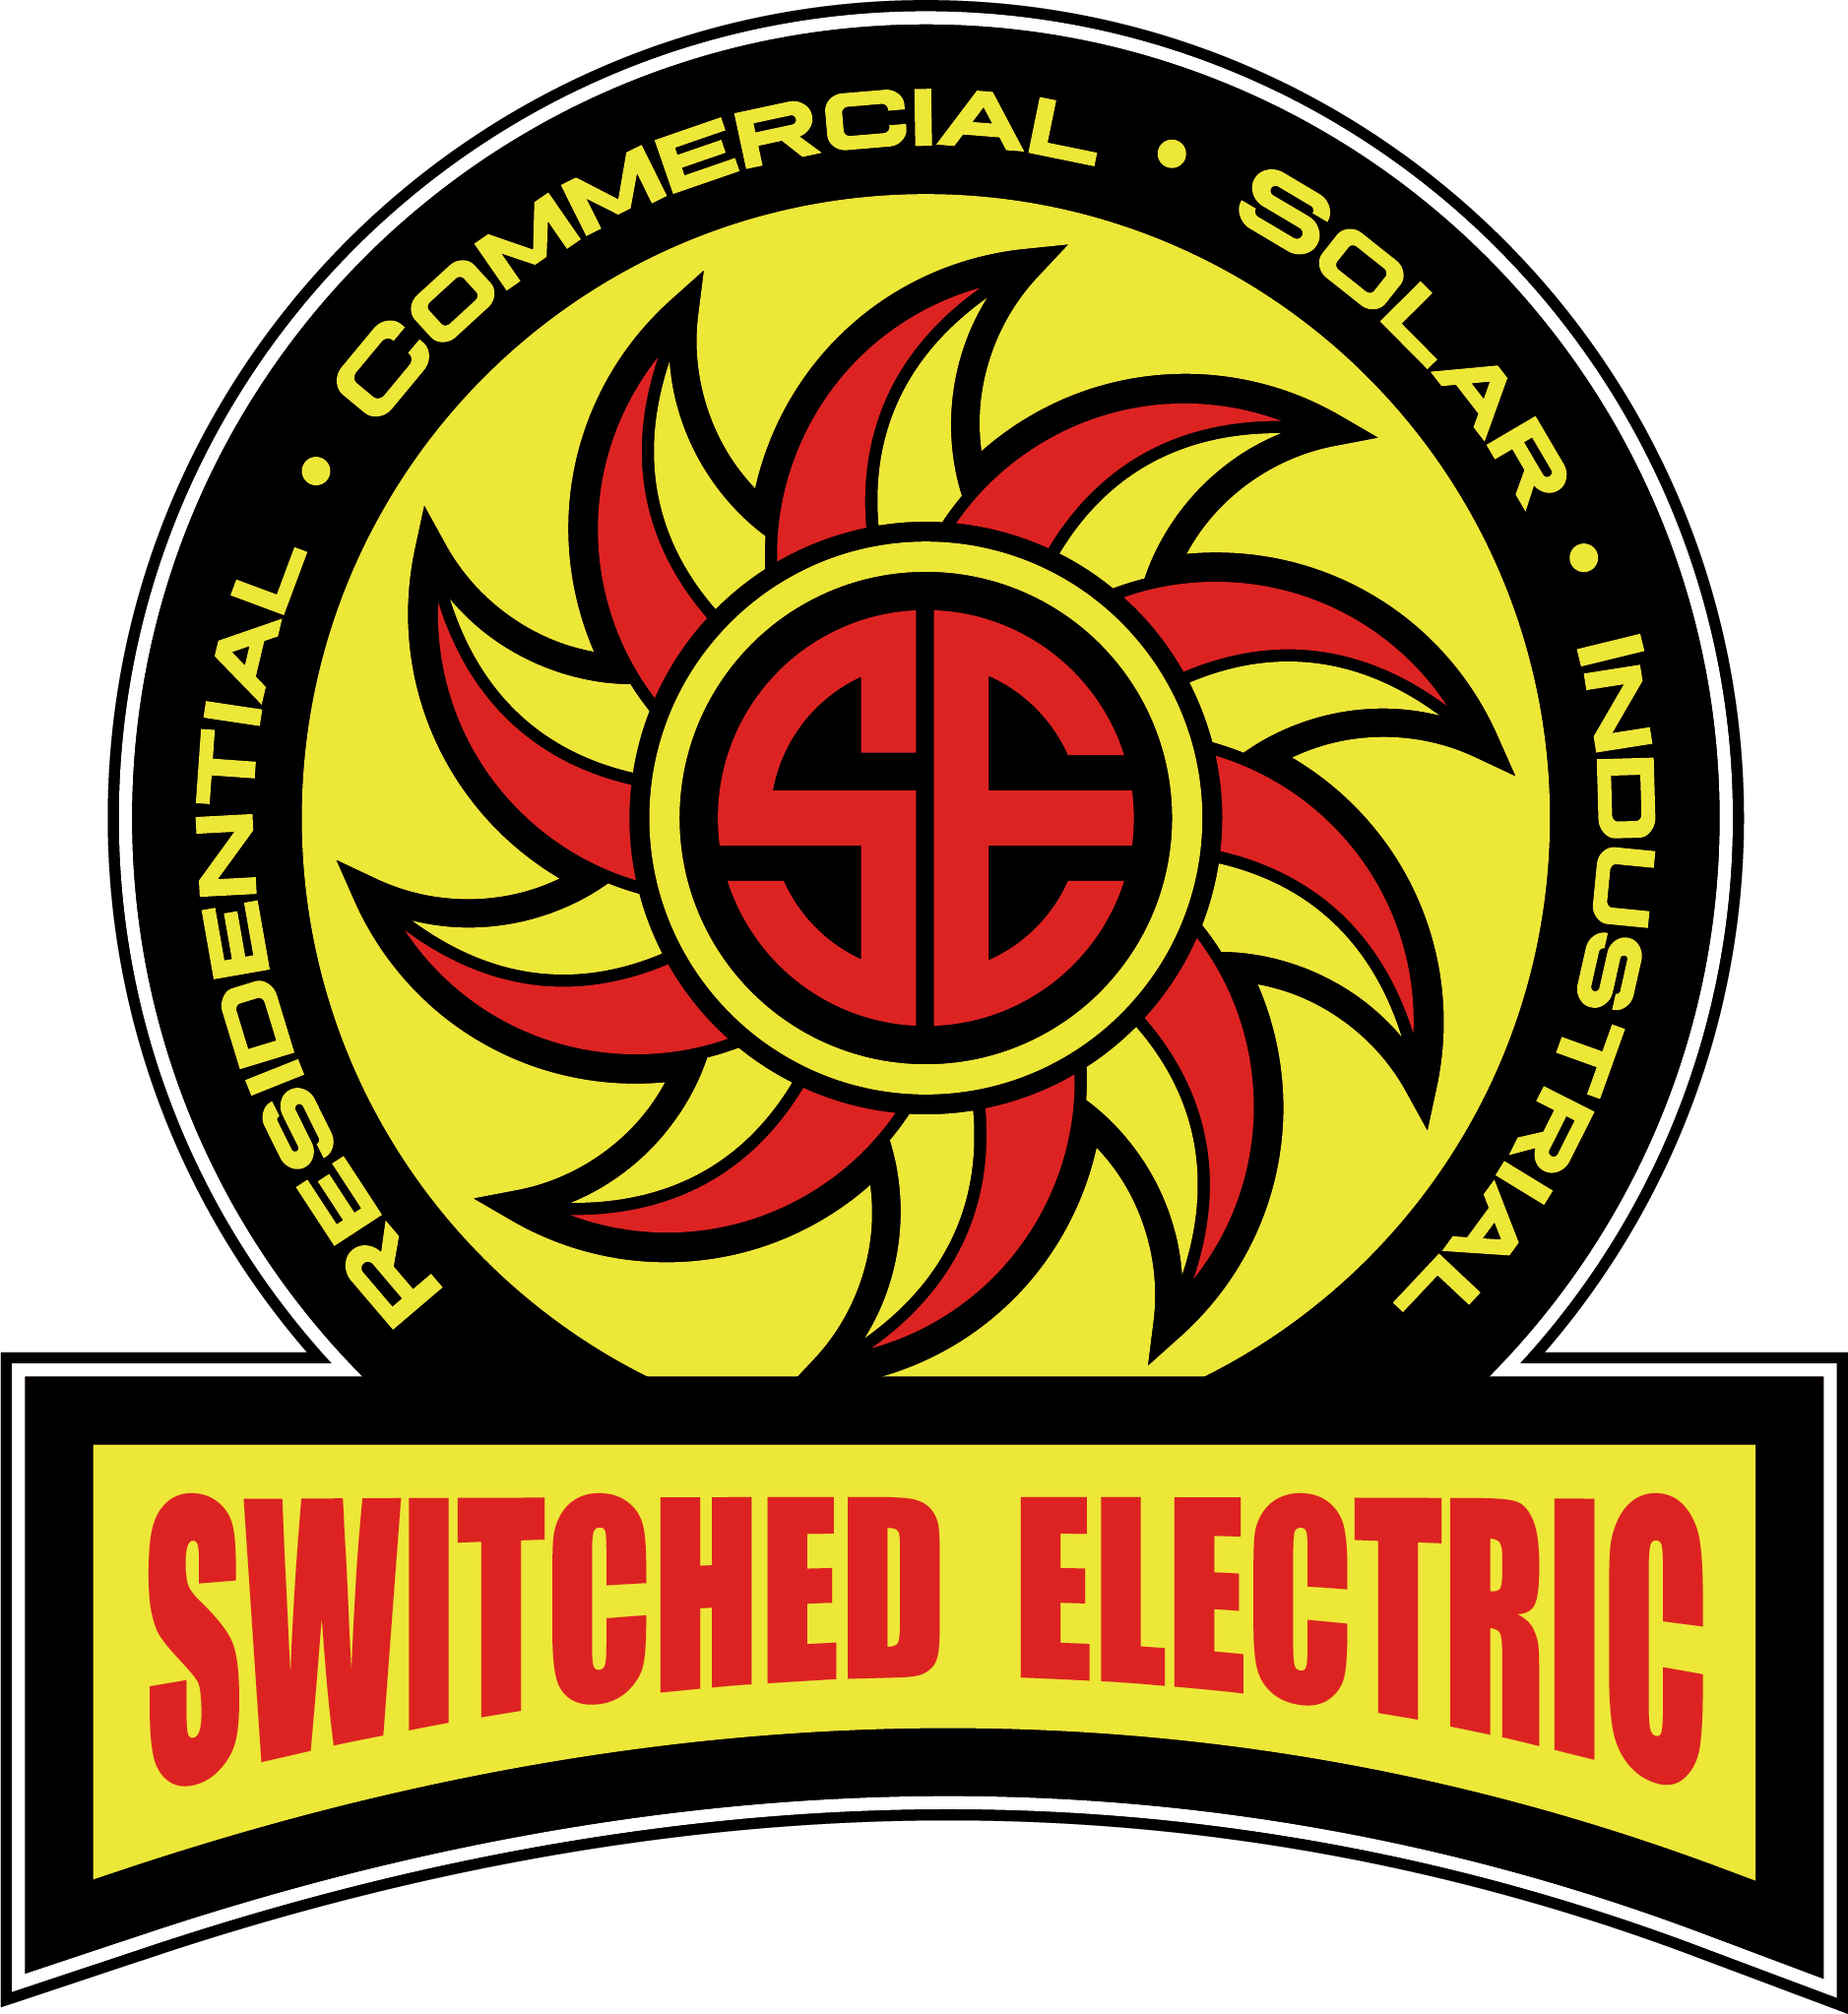 Residential & Commercial Electrical Service